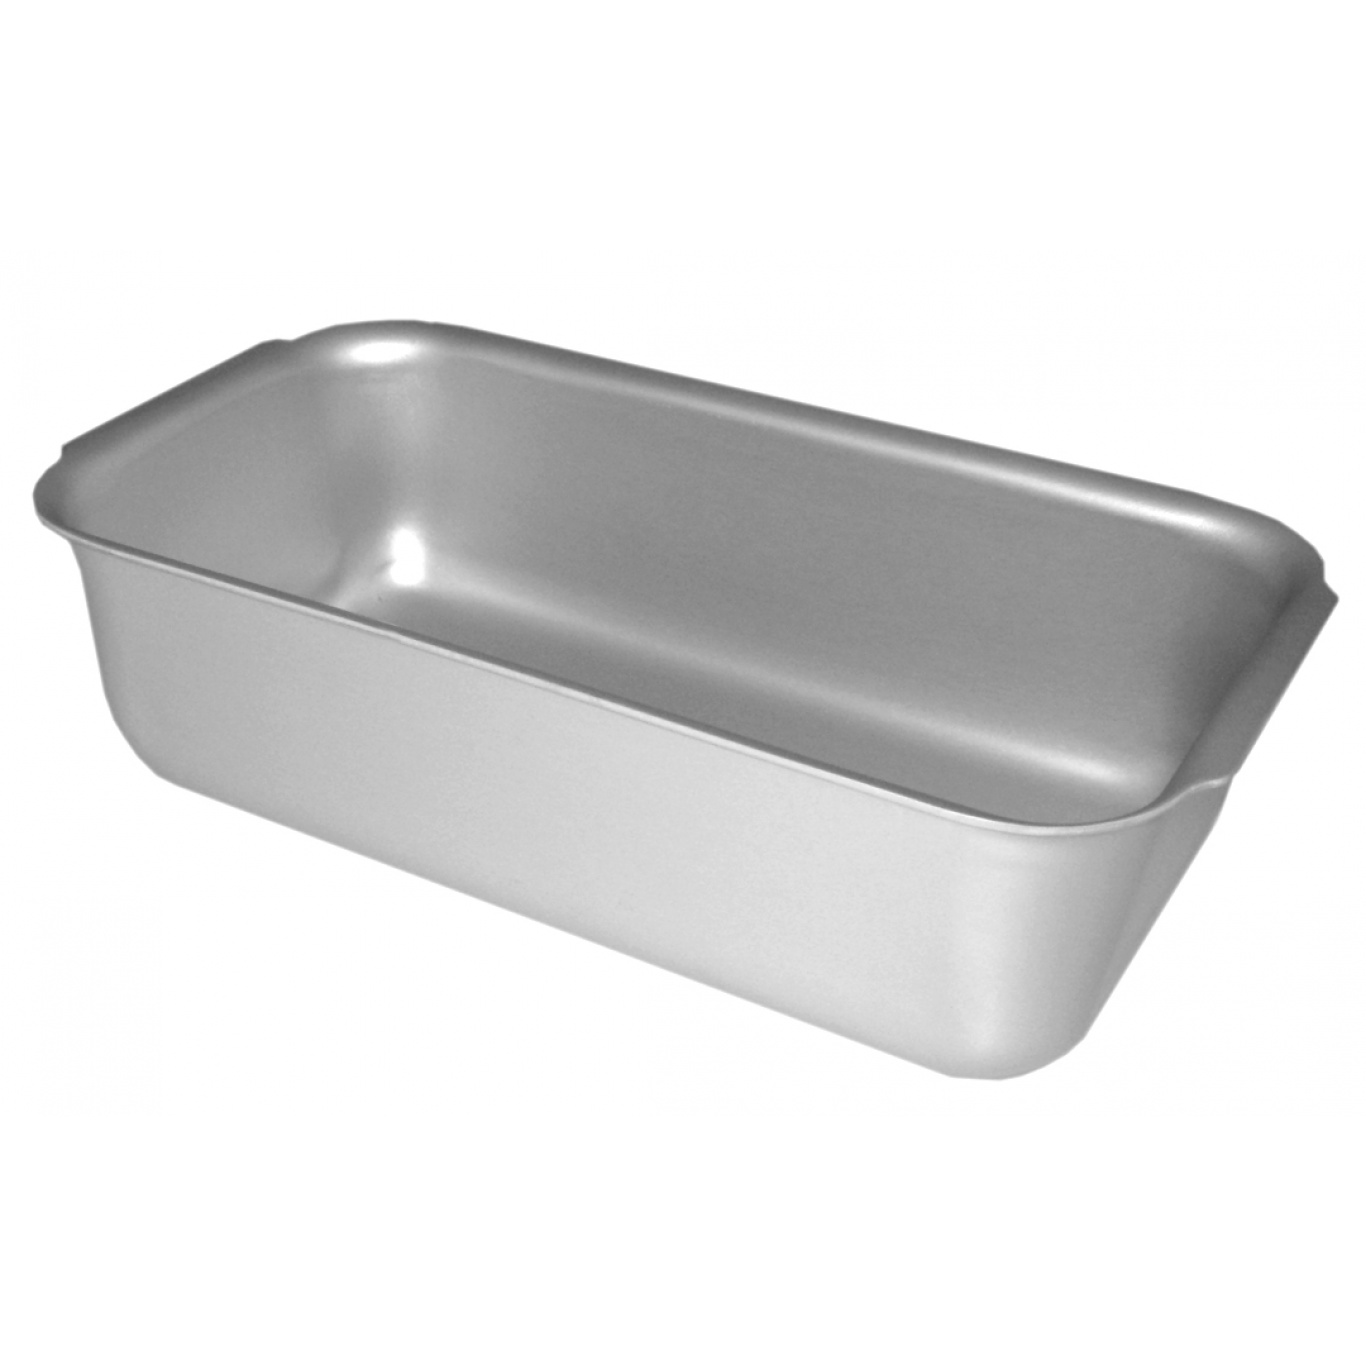 Image of Silverwood Loaf Pan 900grms/2lb